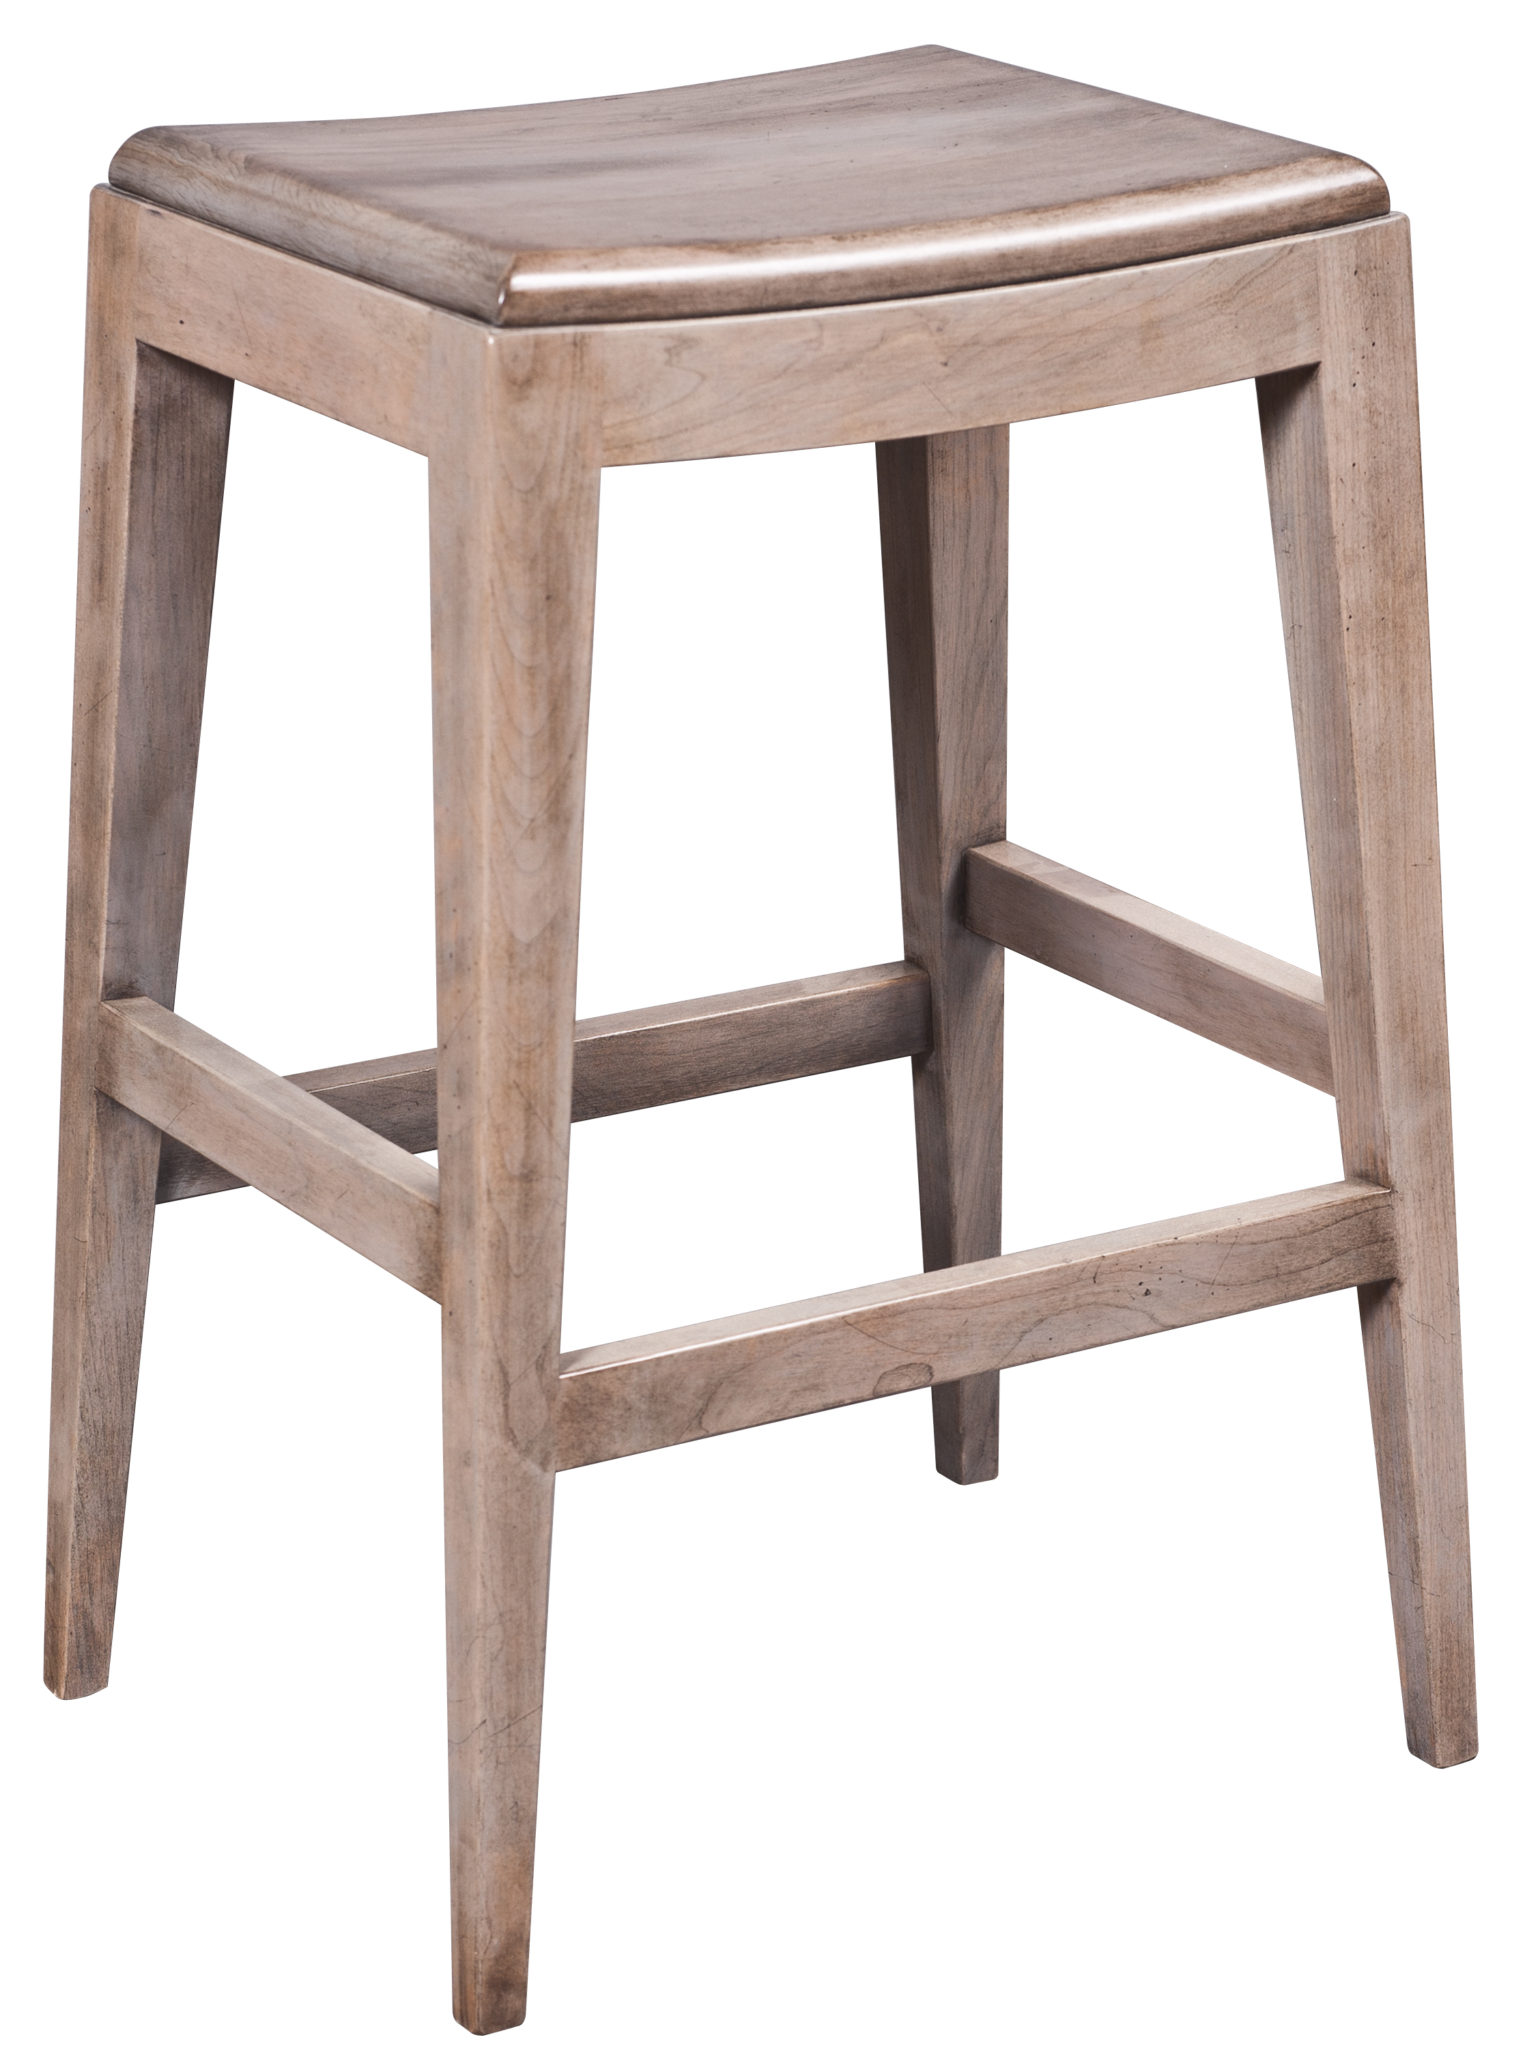 Center City Stool Image